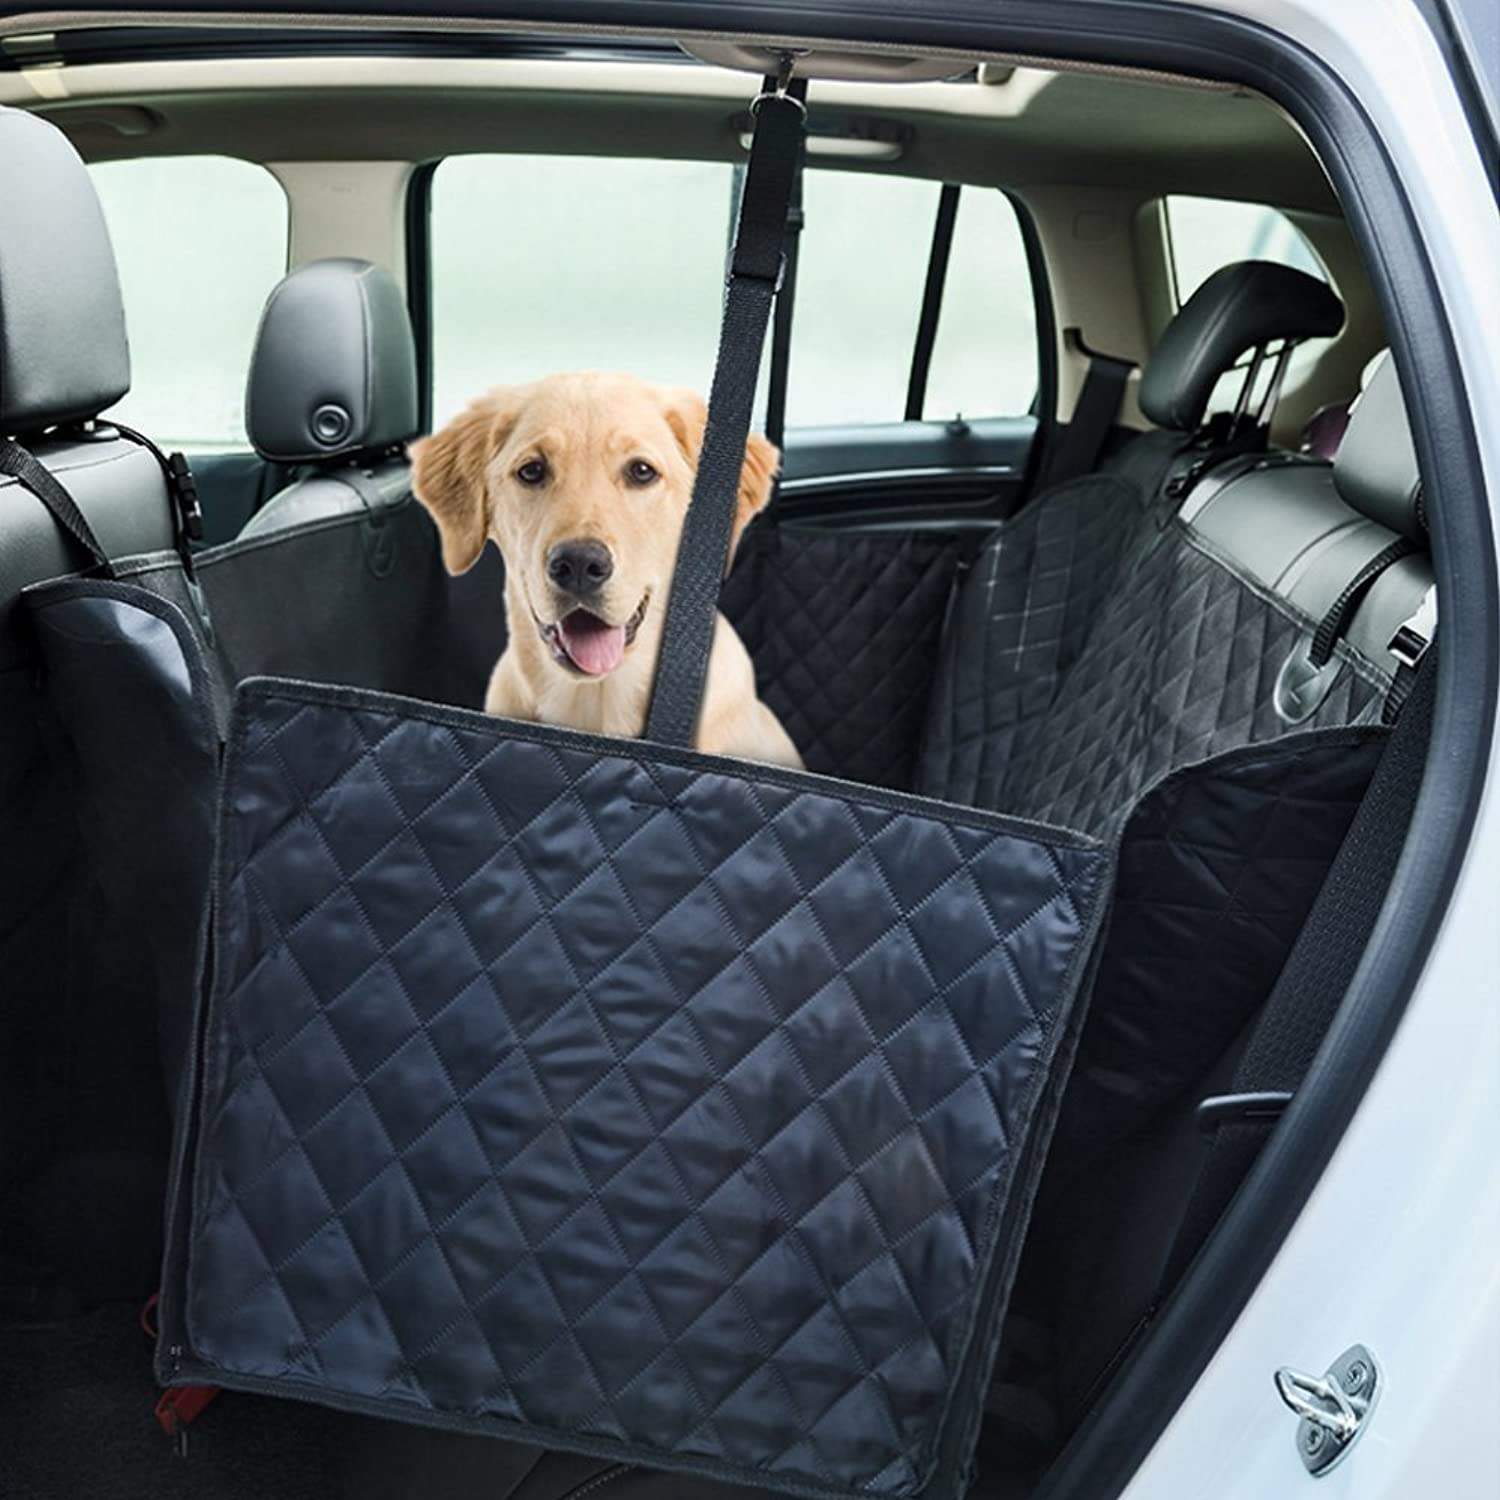 GEMEK Dog Seat Cover Car Seat Cover Pets Hammock Congreenible, Waterproof & Side Flaps Scratch Proof Nonslip Durable Soft Pet Back Seat Covers Cars Trucks SUVs (Back Seat Cover Zip)